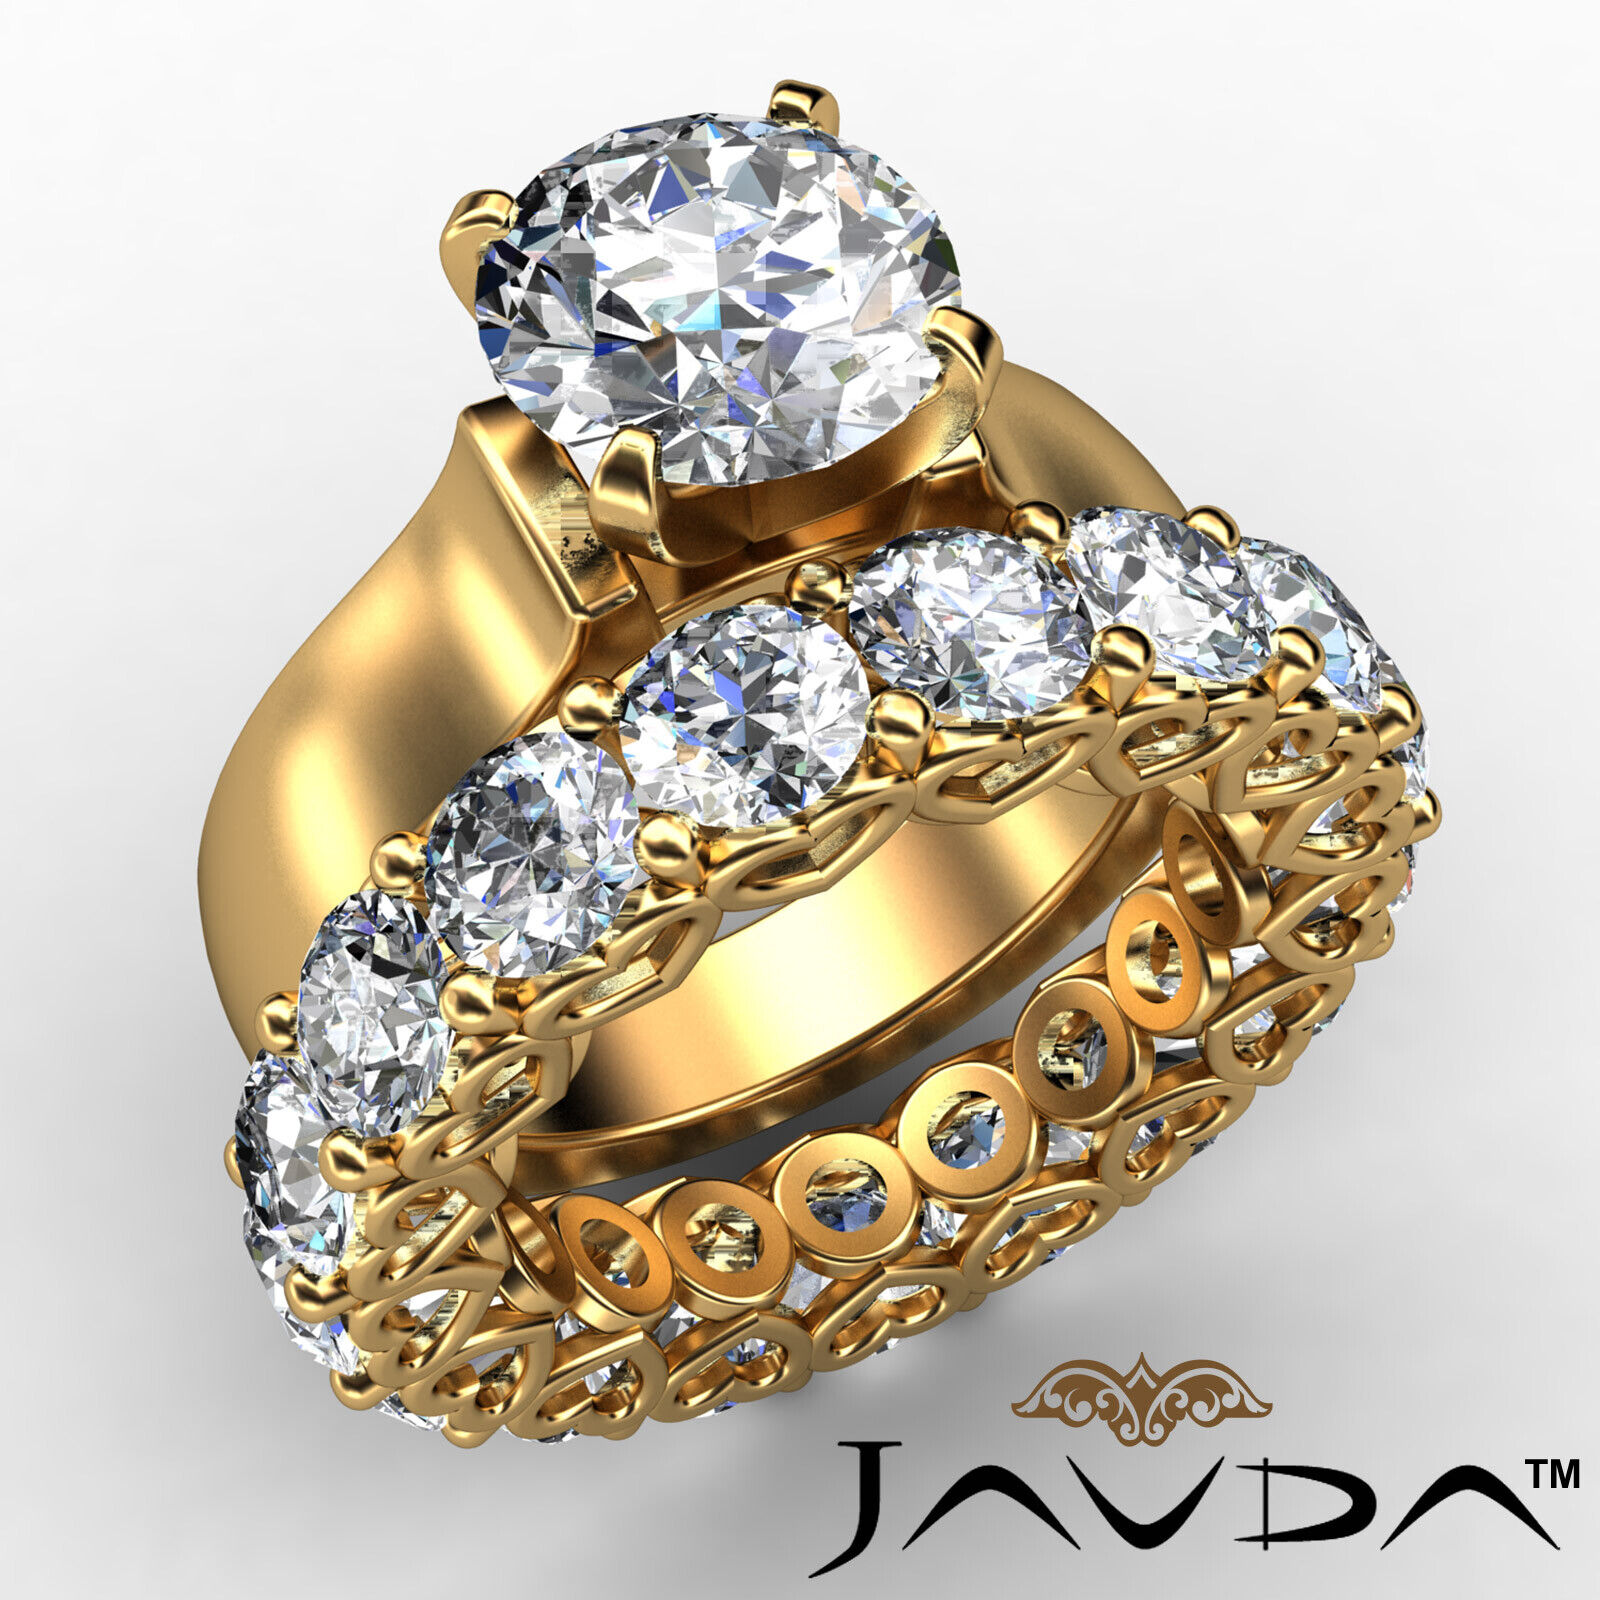 7.05Ct. Diamond Engagement Wedding Bridal Set Ring 14k Yellow Gold GIA Certified